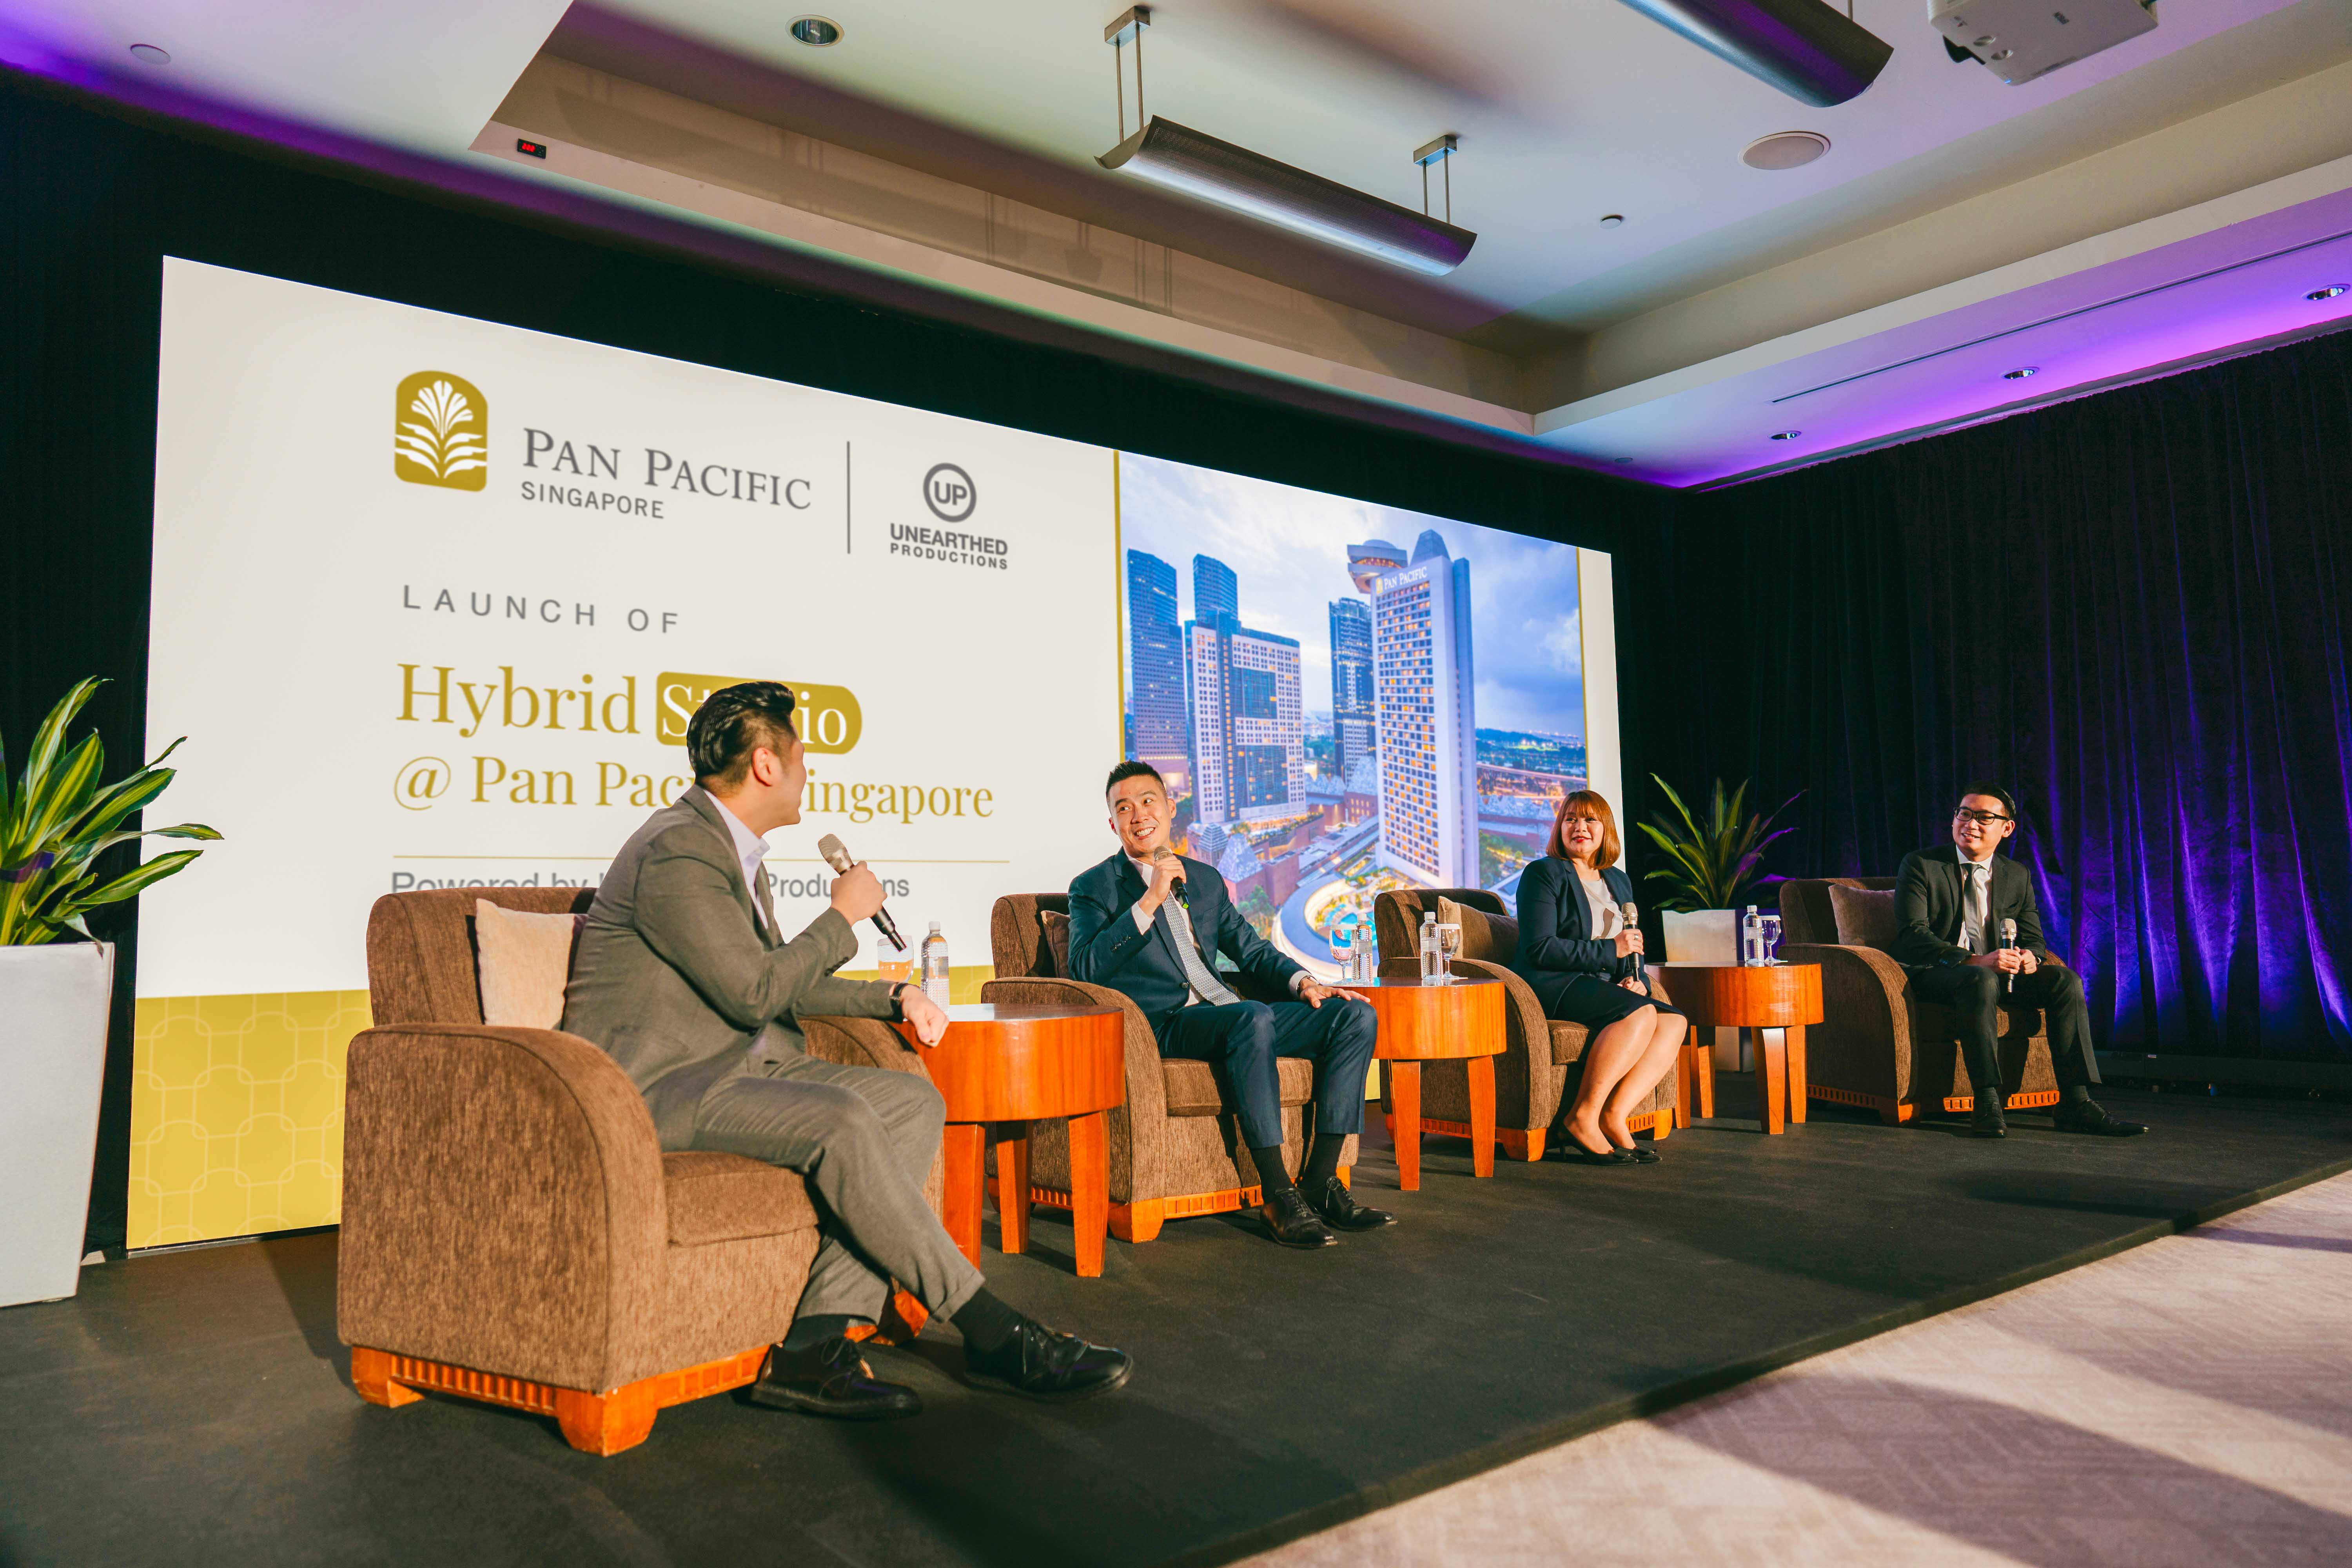 Hybrid Studio at Pan Pacific Singapore launched to elevate hybrid event experiences